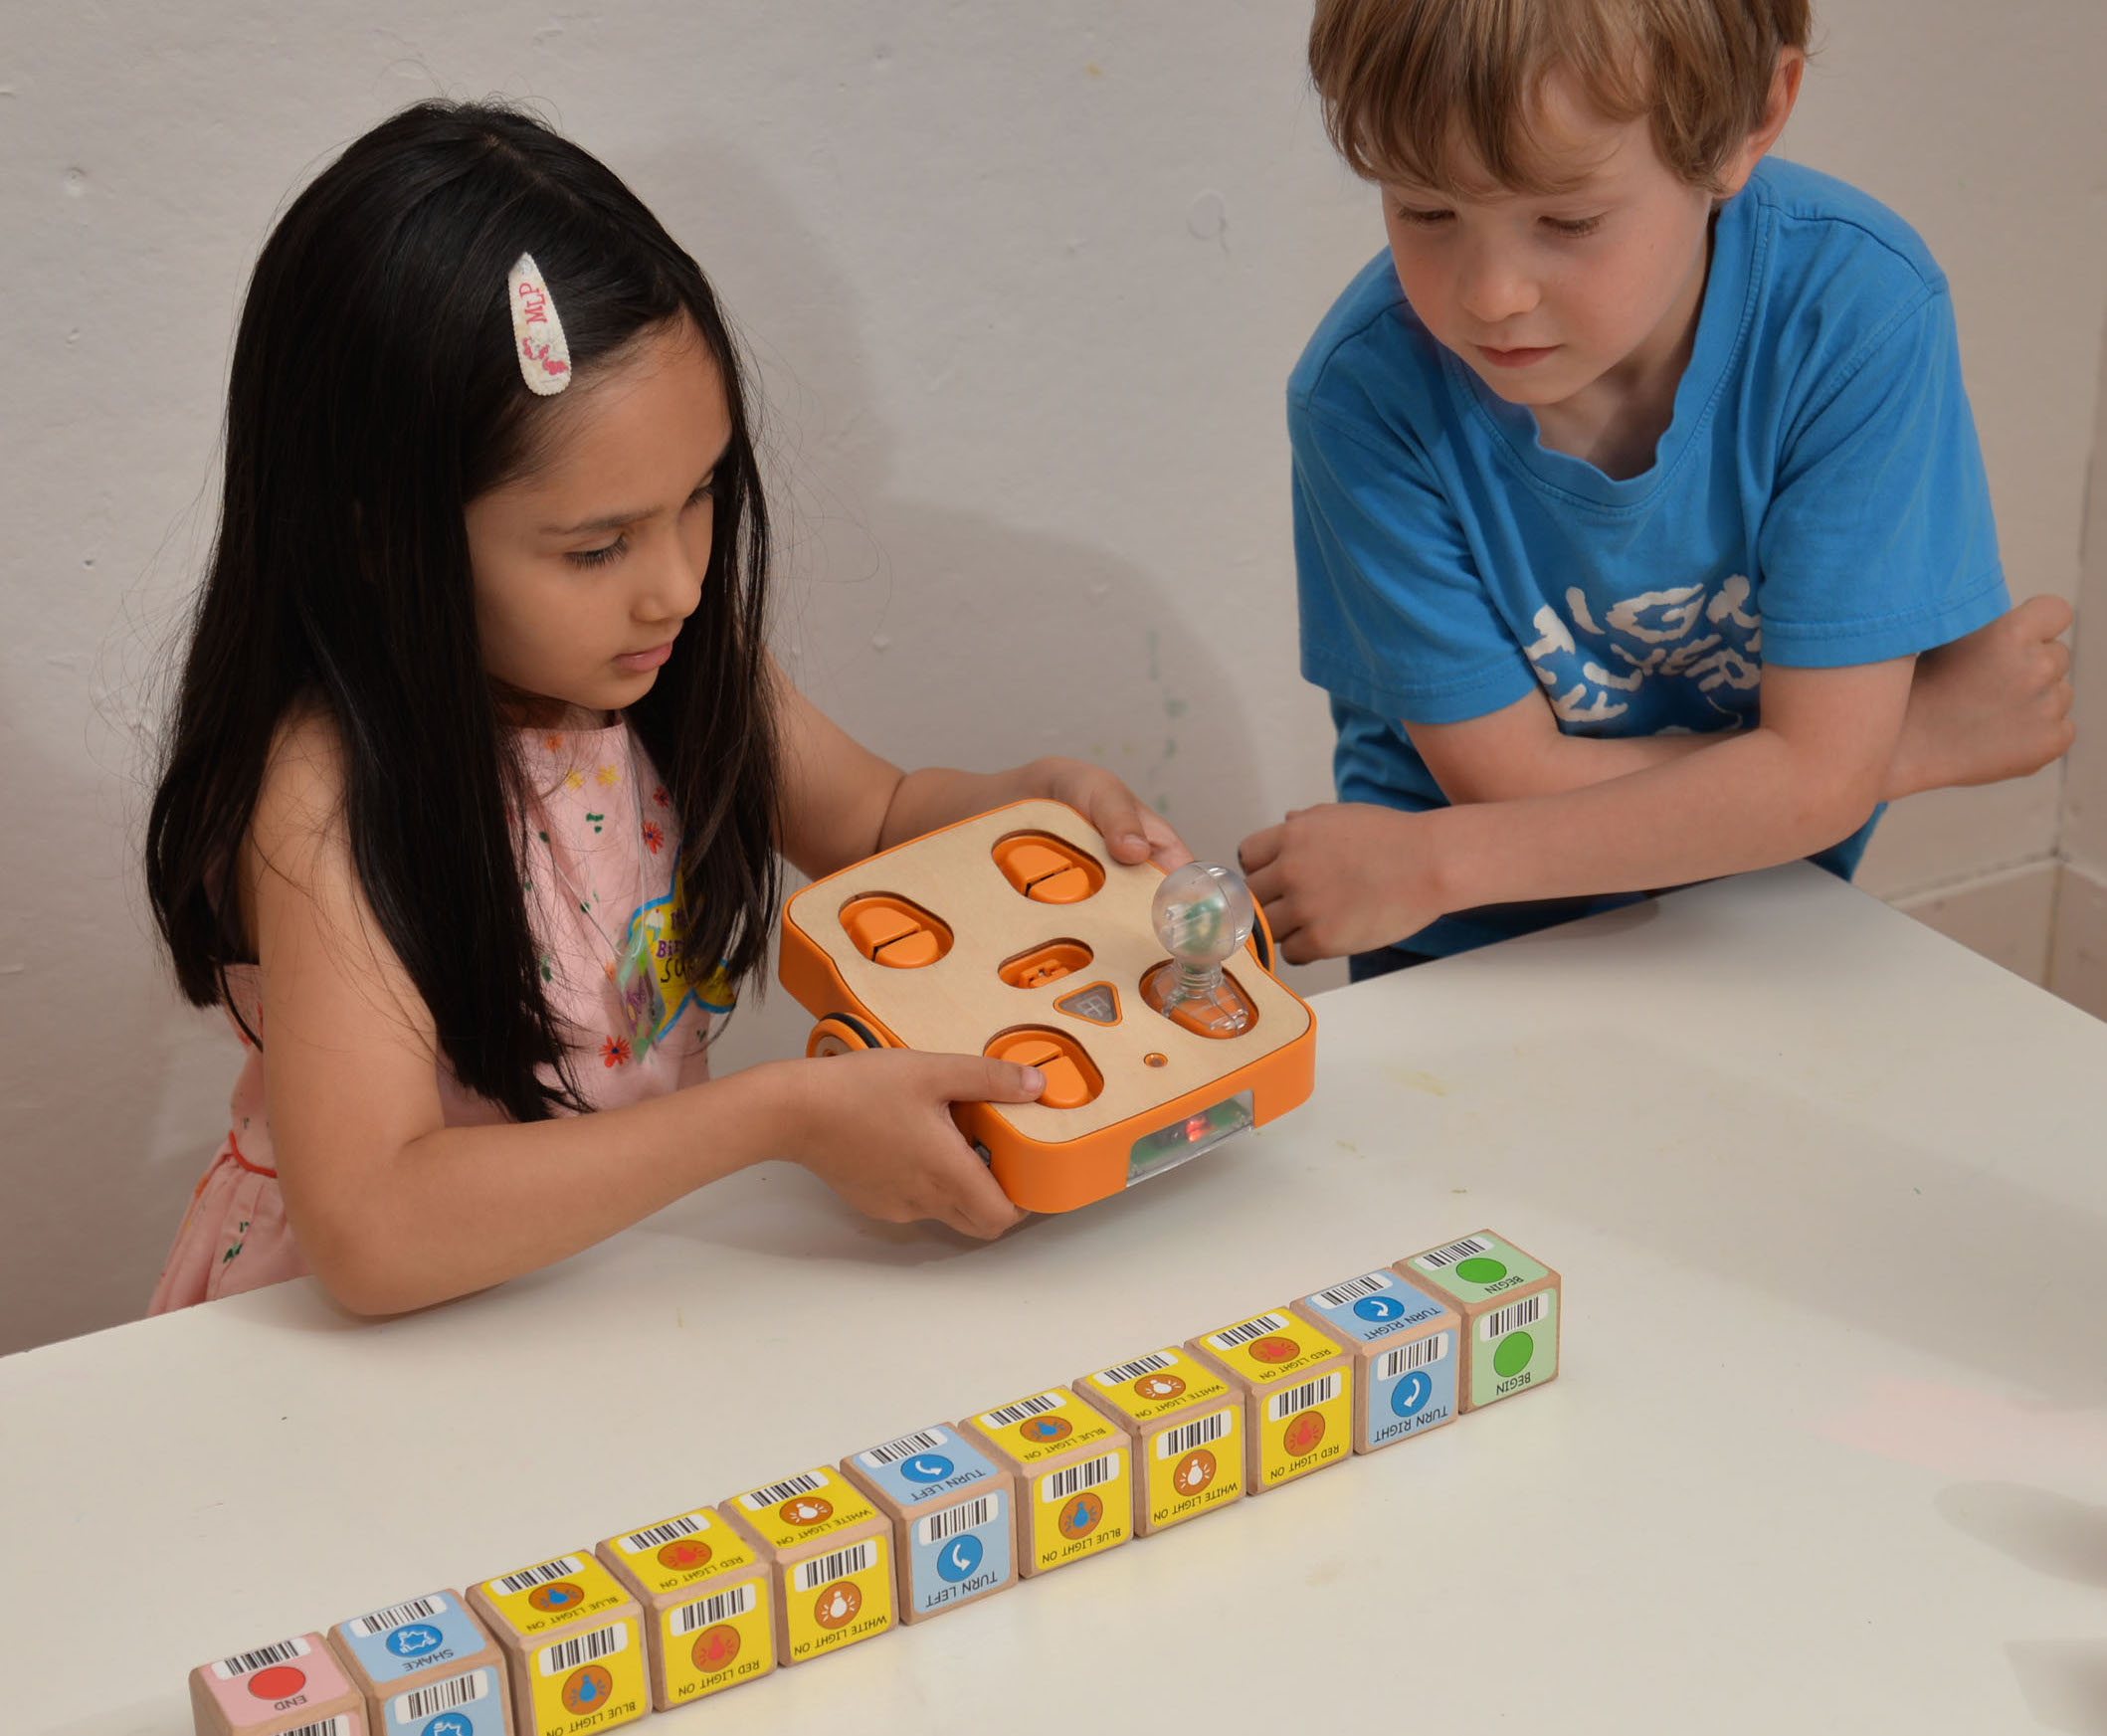 Click the photo to learn more about KinderLab's KIBO robot.